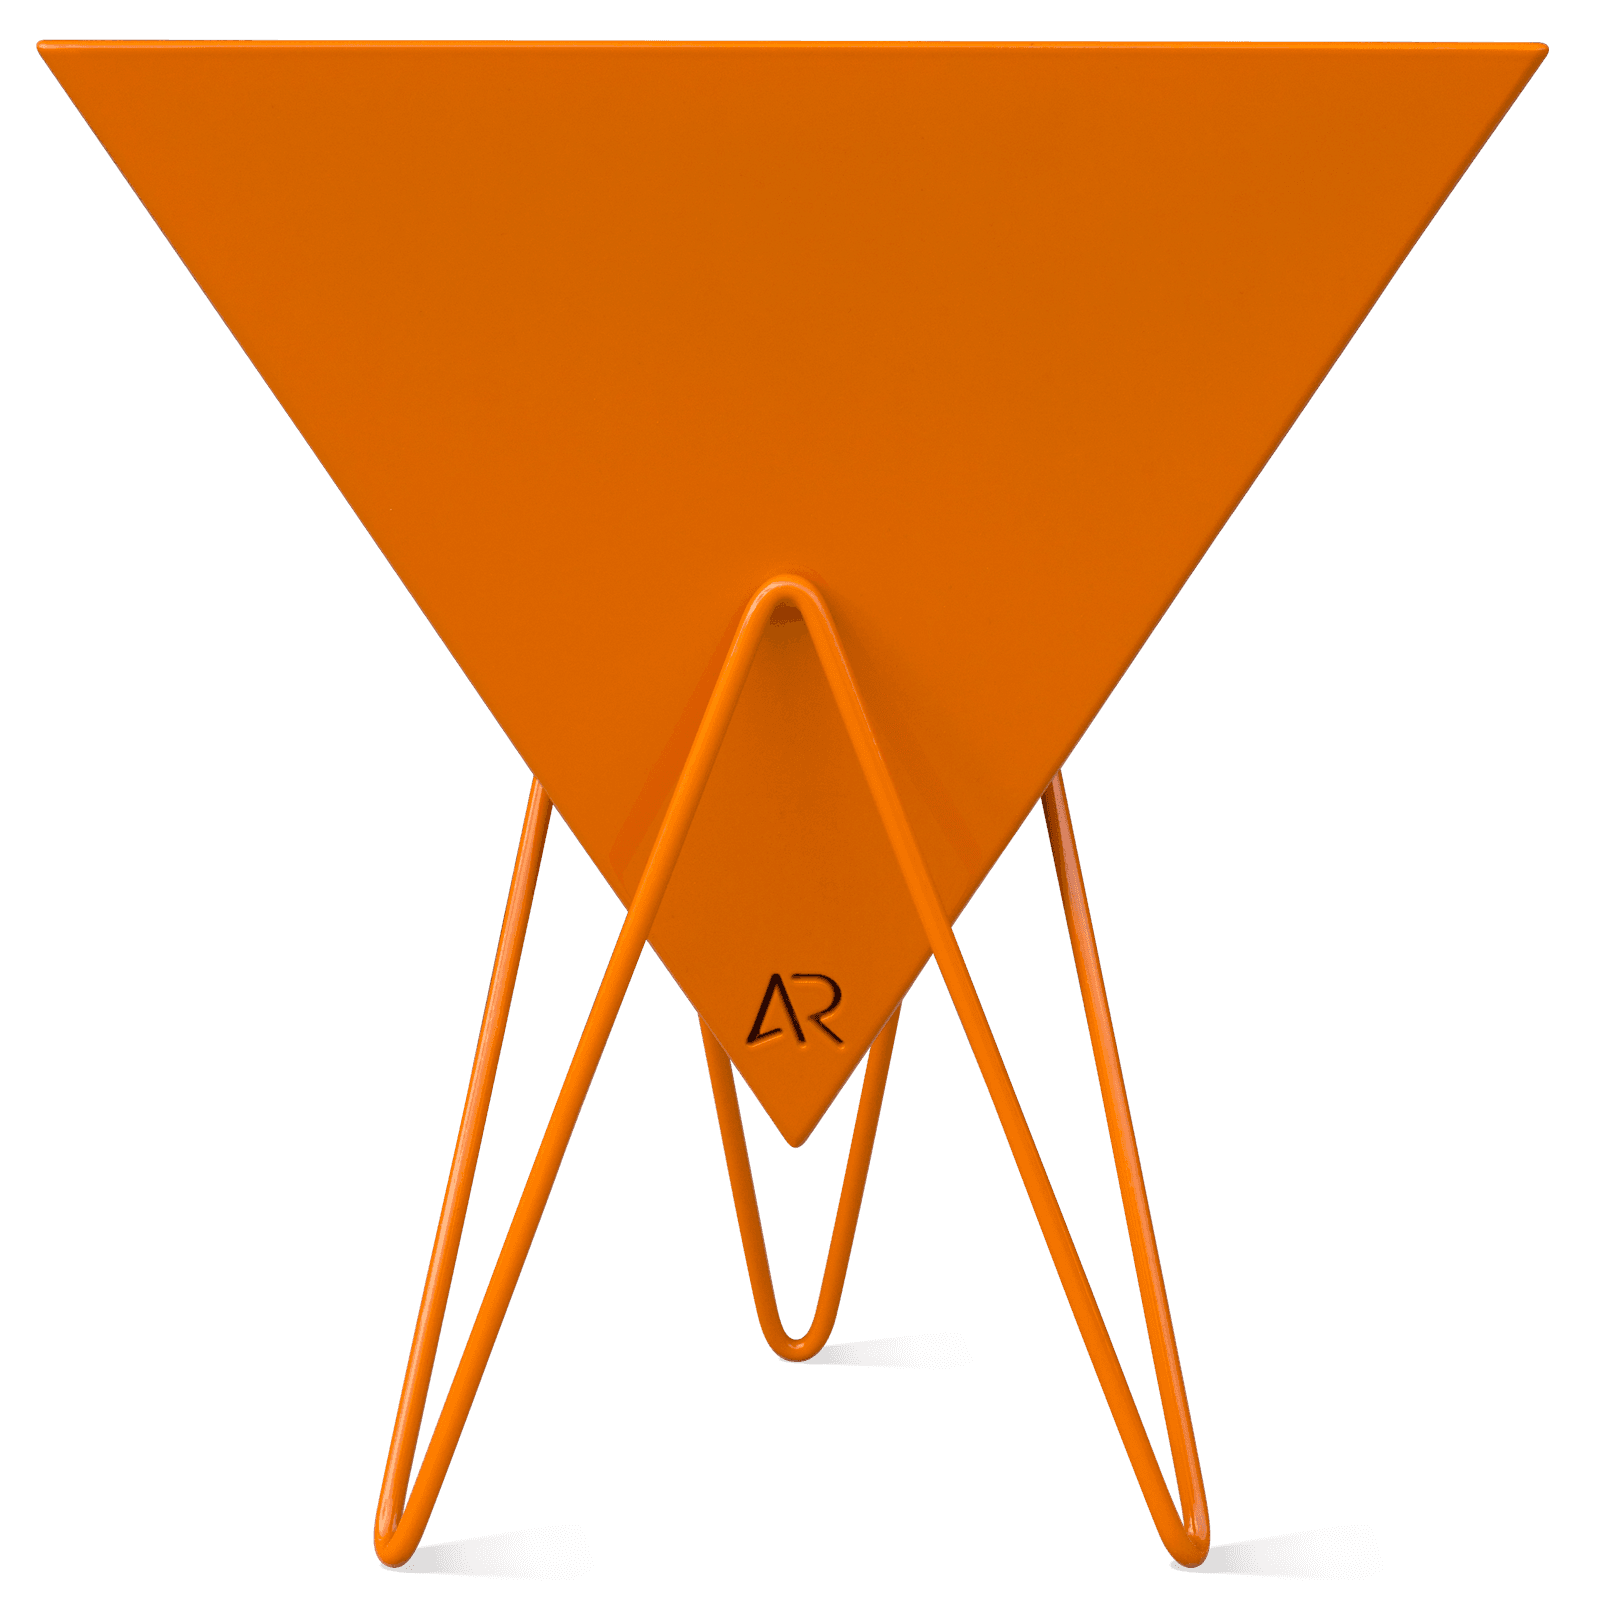 An orange triangle-shaped planter that is held up by hair pin legs